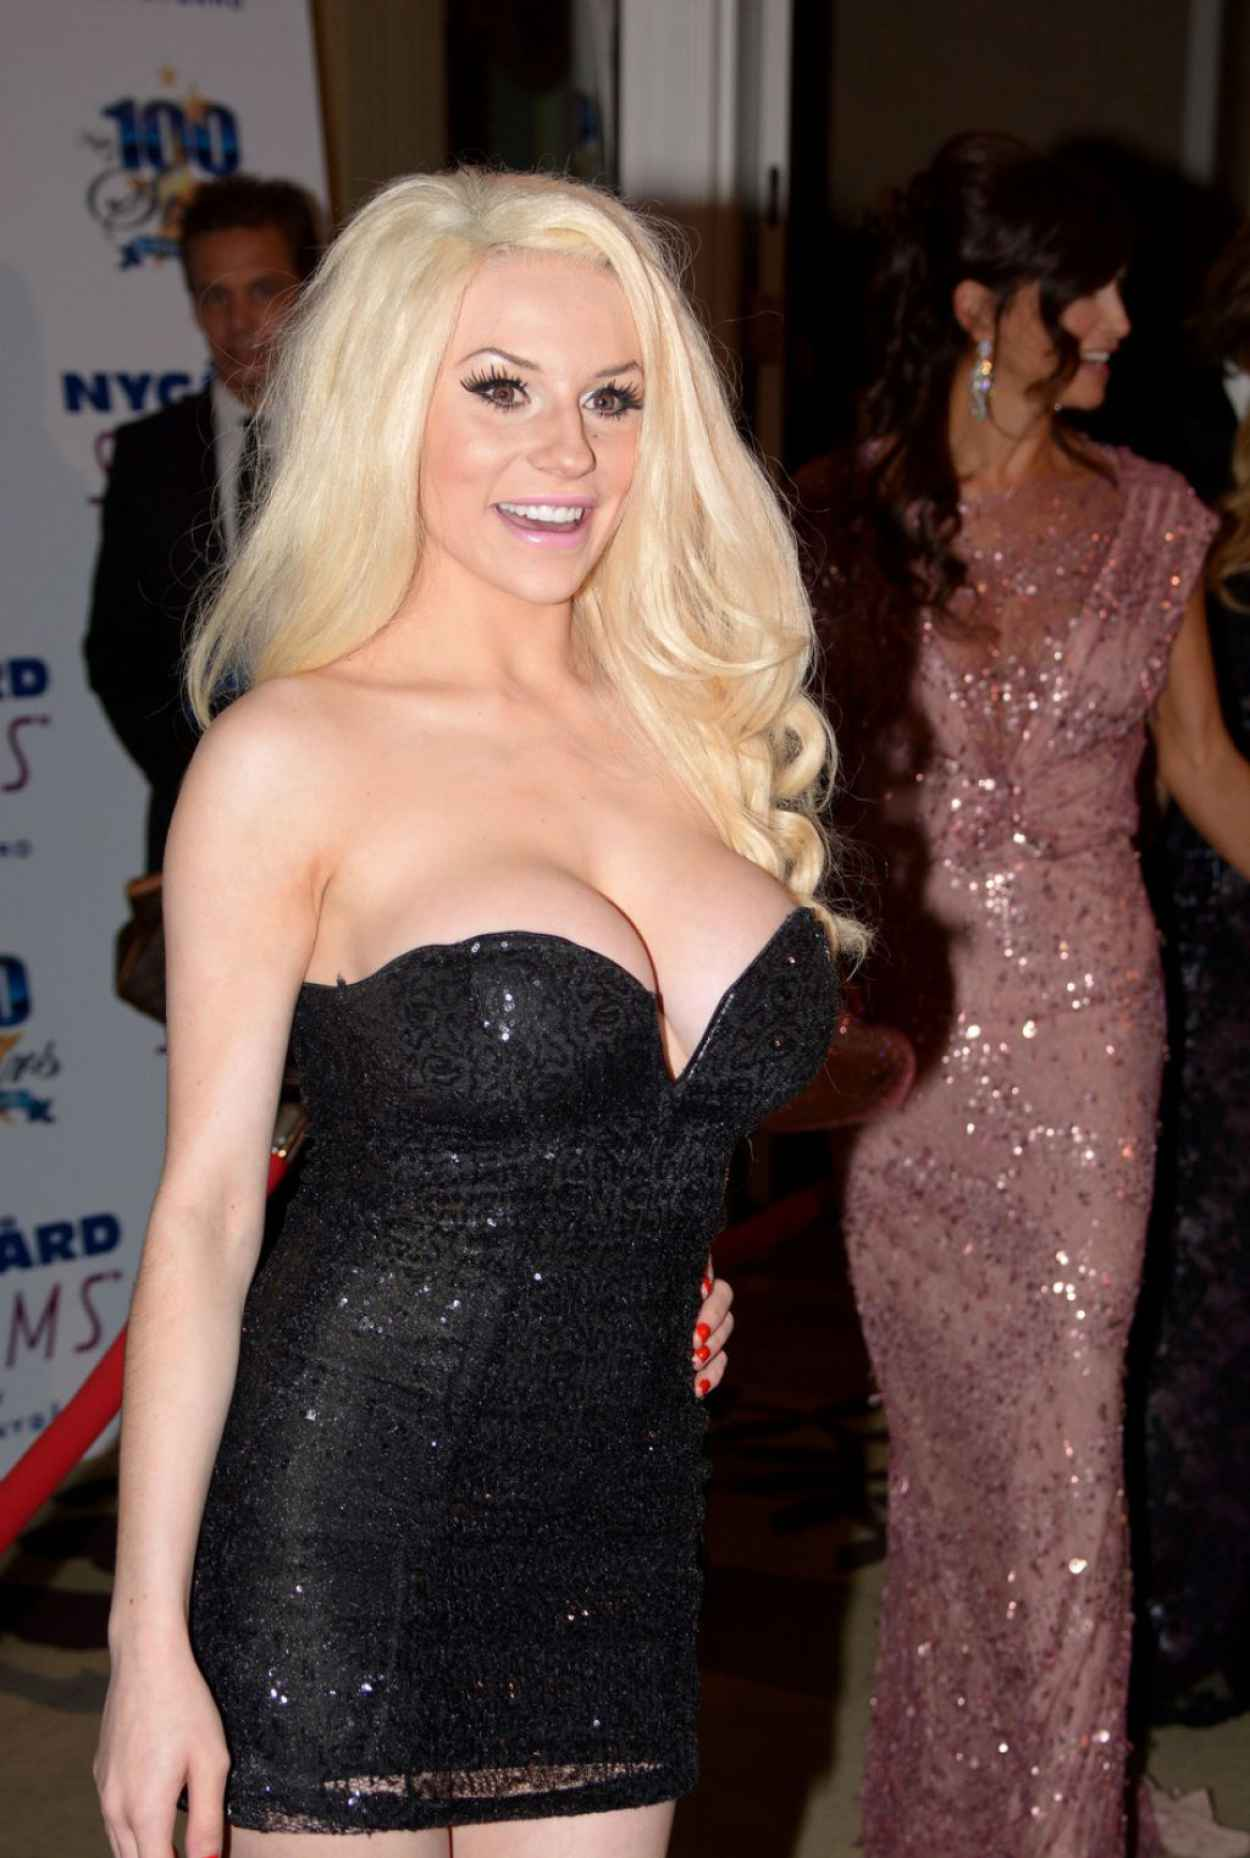 Courtney Stodden At The Night Of 100 Stars Oscar Viewing Party - March 2015-1